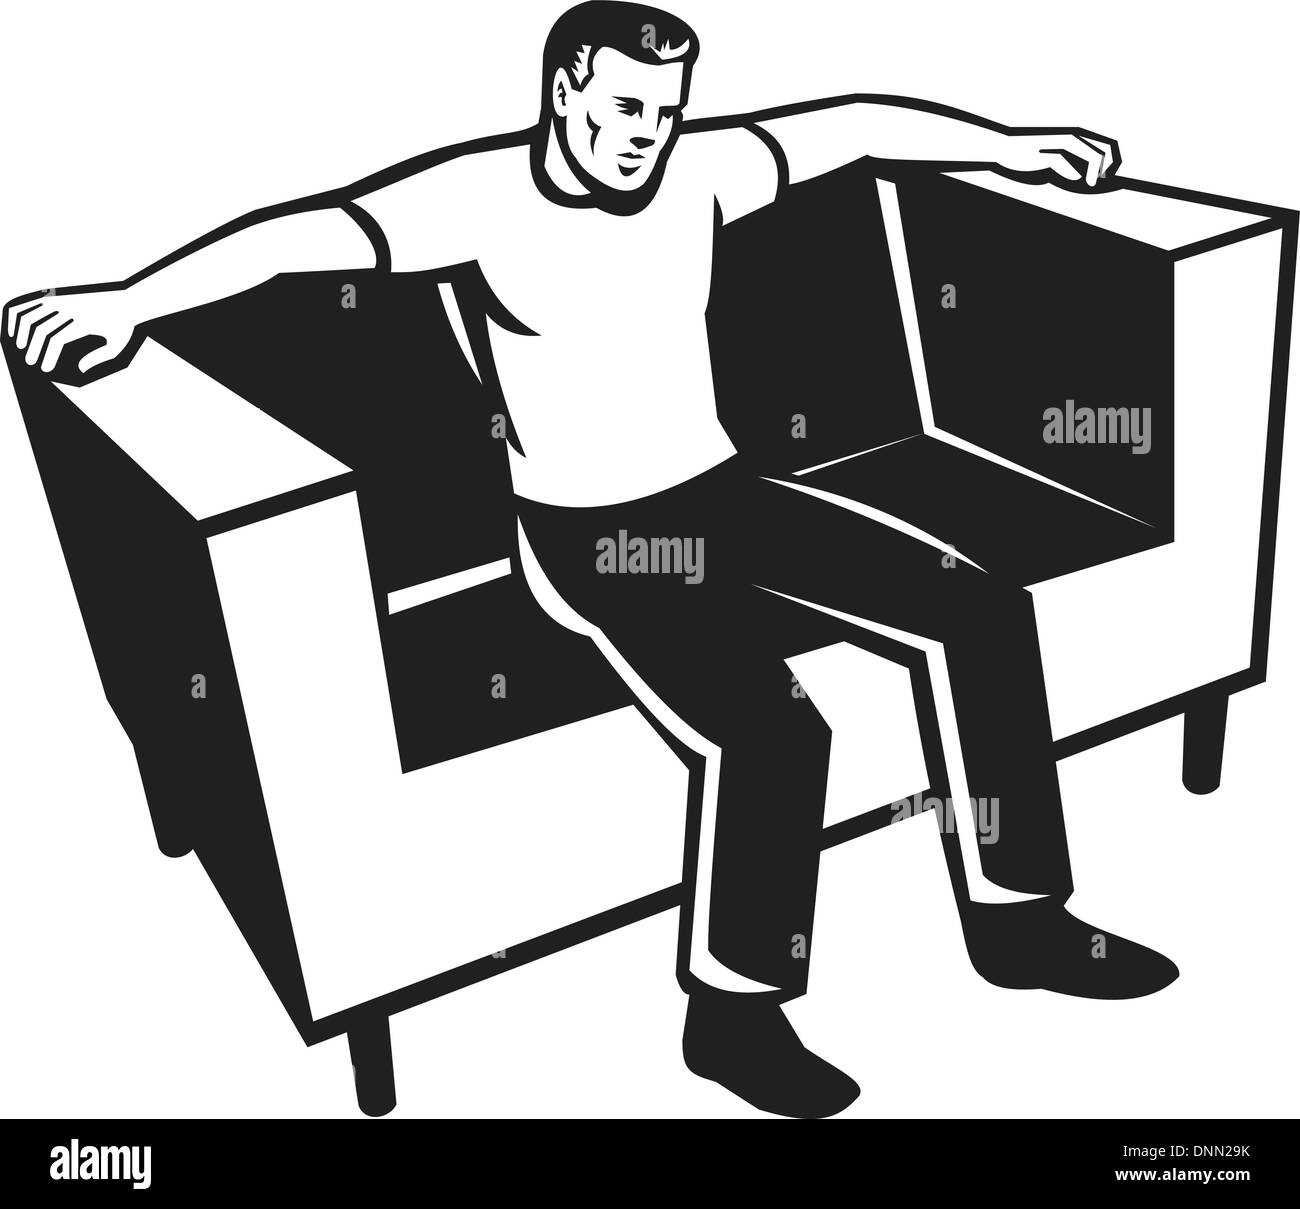 Illustration Of A Man Sitting On Sofa Couch Chair Front View Done In